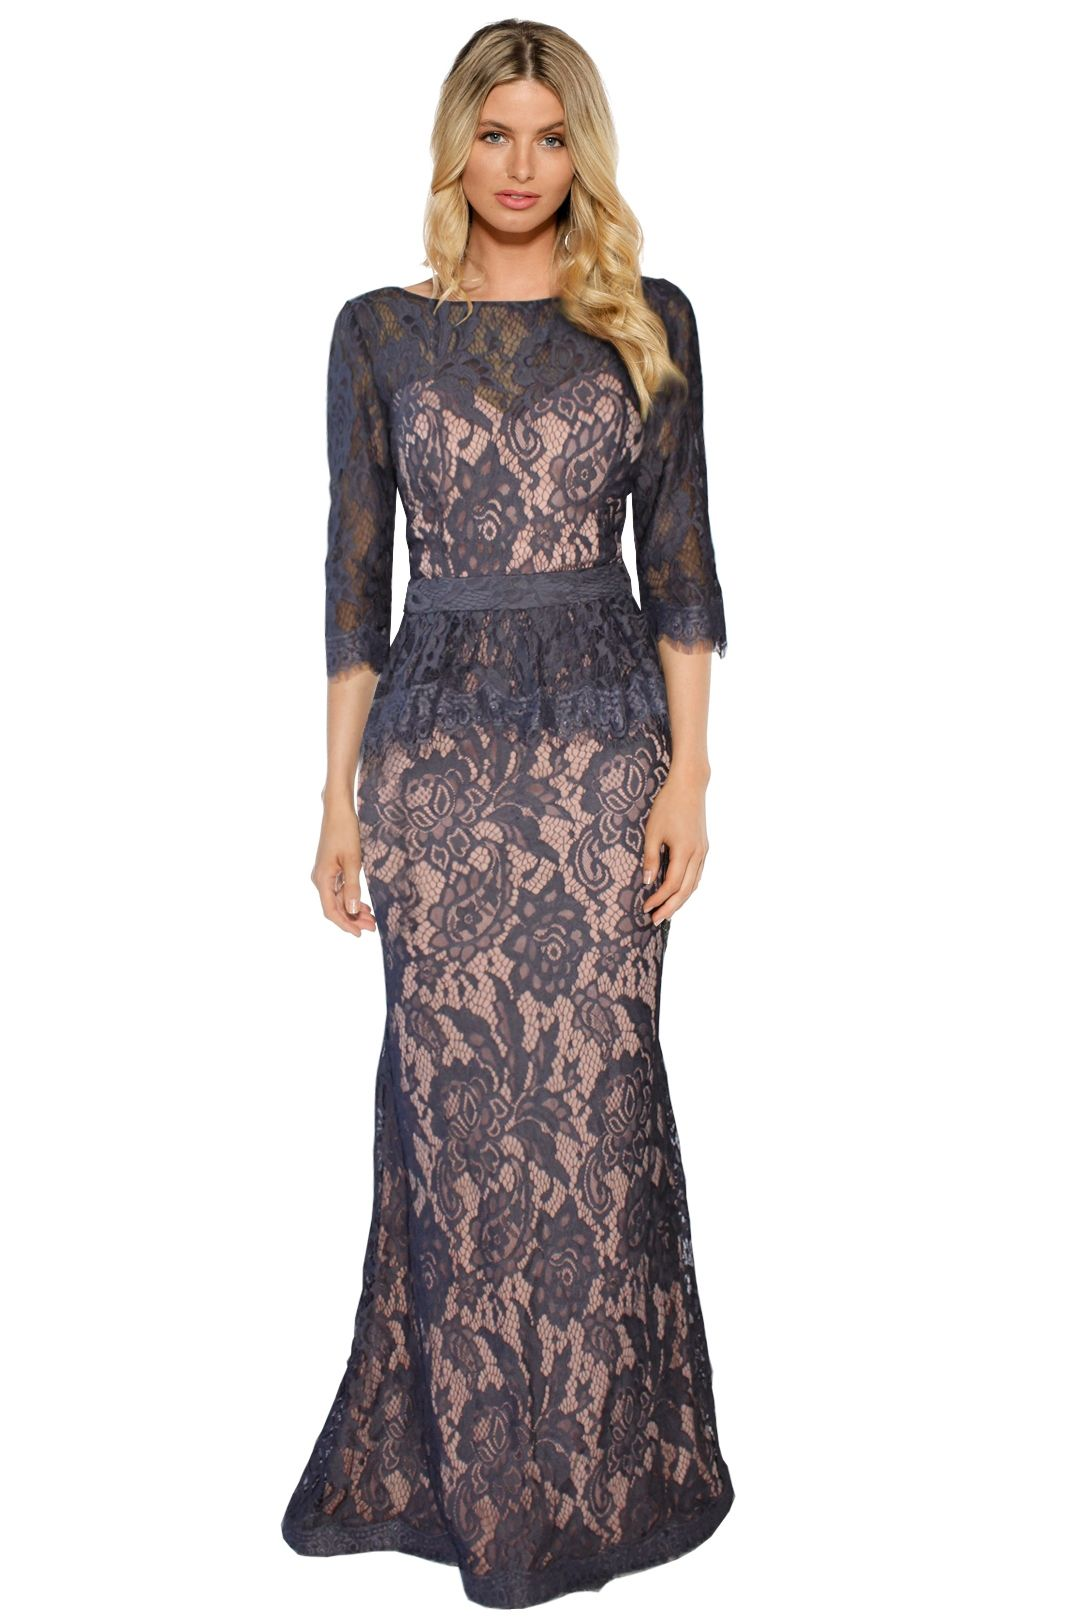 Jadore - Tessa Lace Gown - Grey Lace - Front